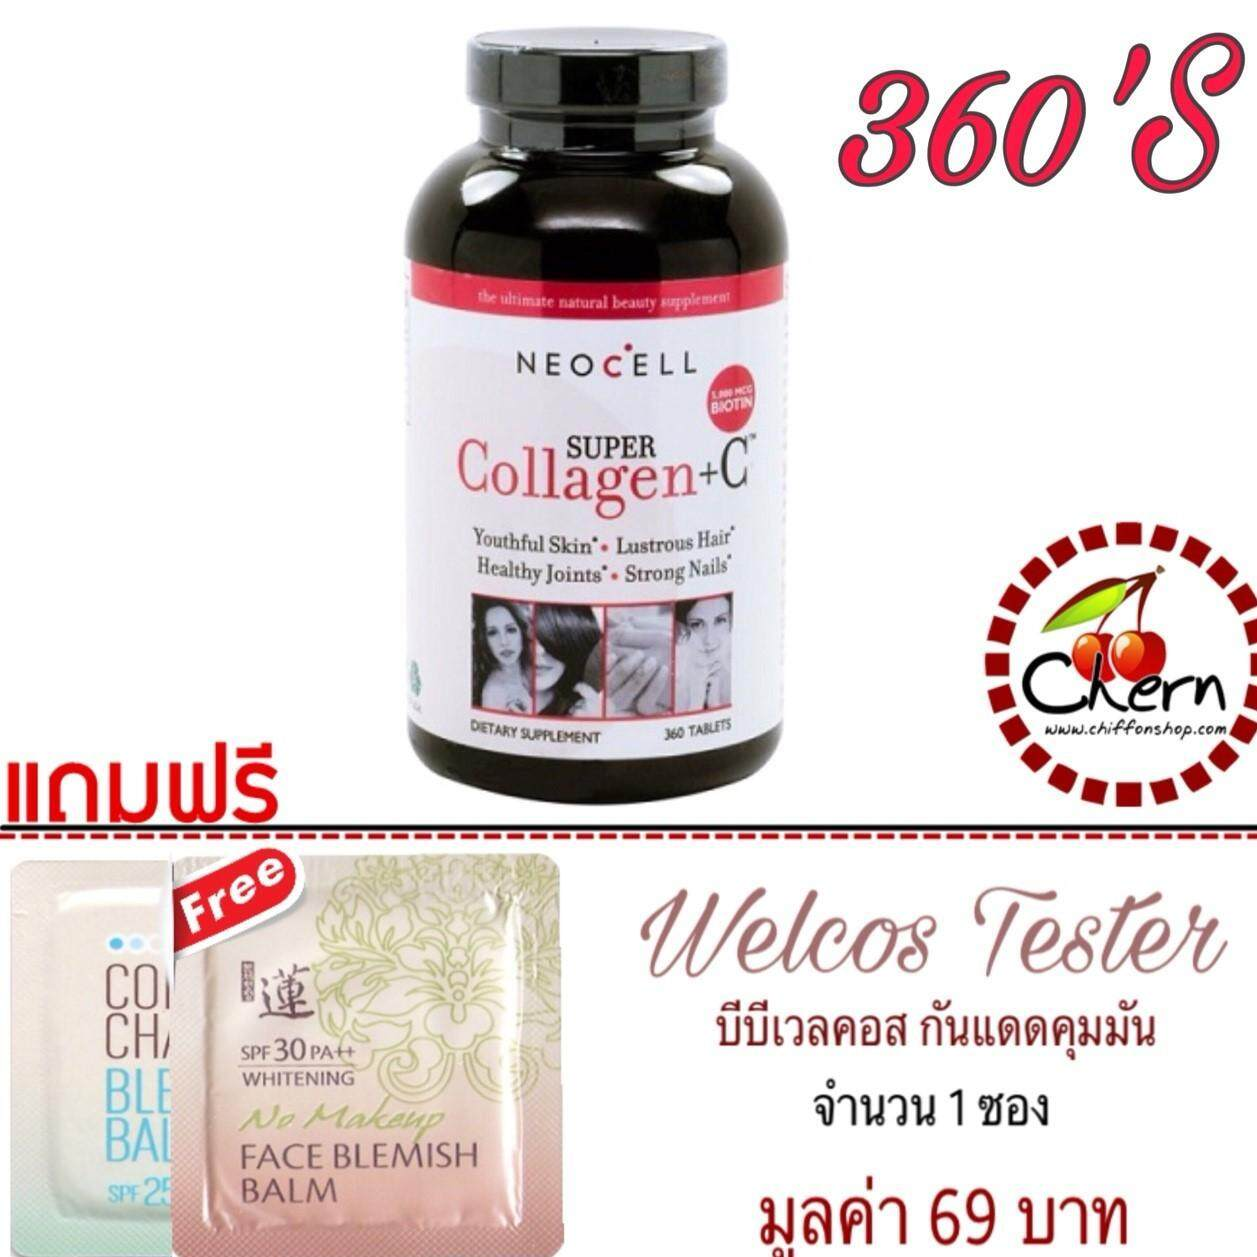 Neocell Super Collagen C 6000 Mg With Biotin 360 Tablets 1กระปุก กรุงเทพมหานคร